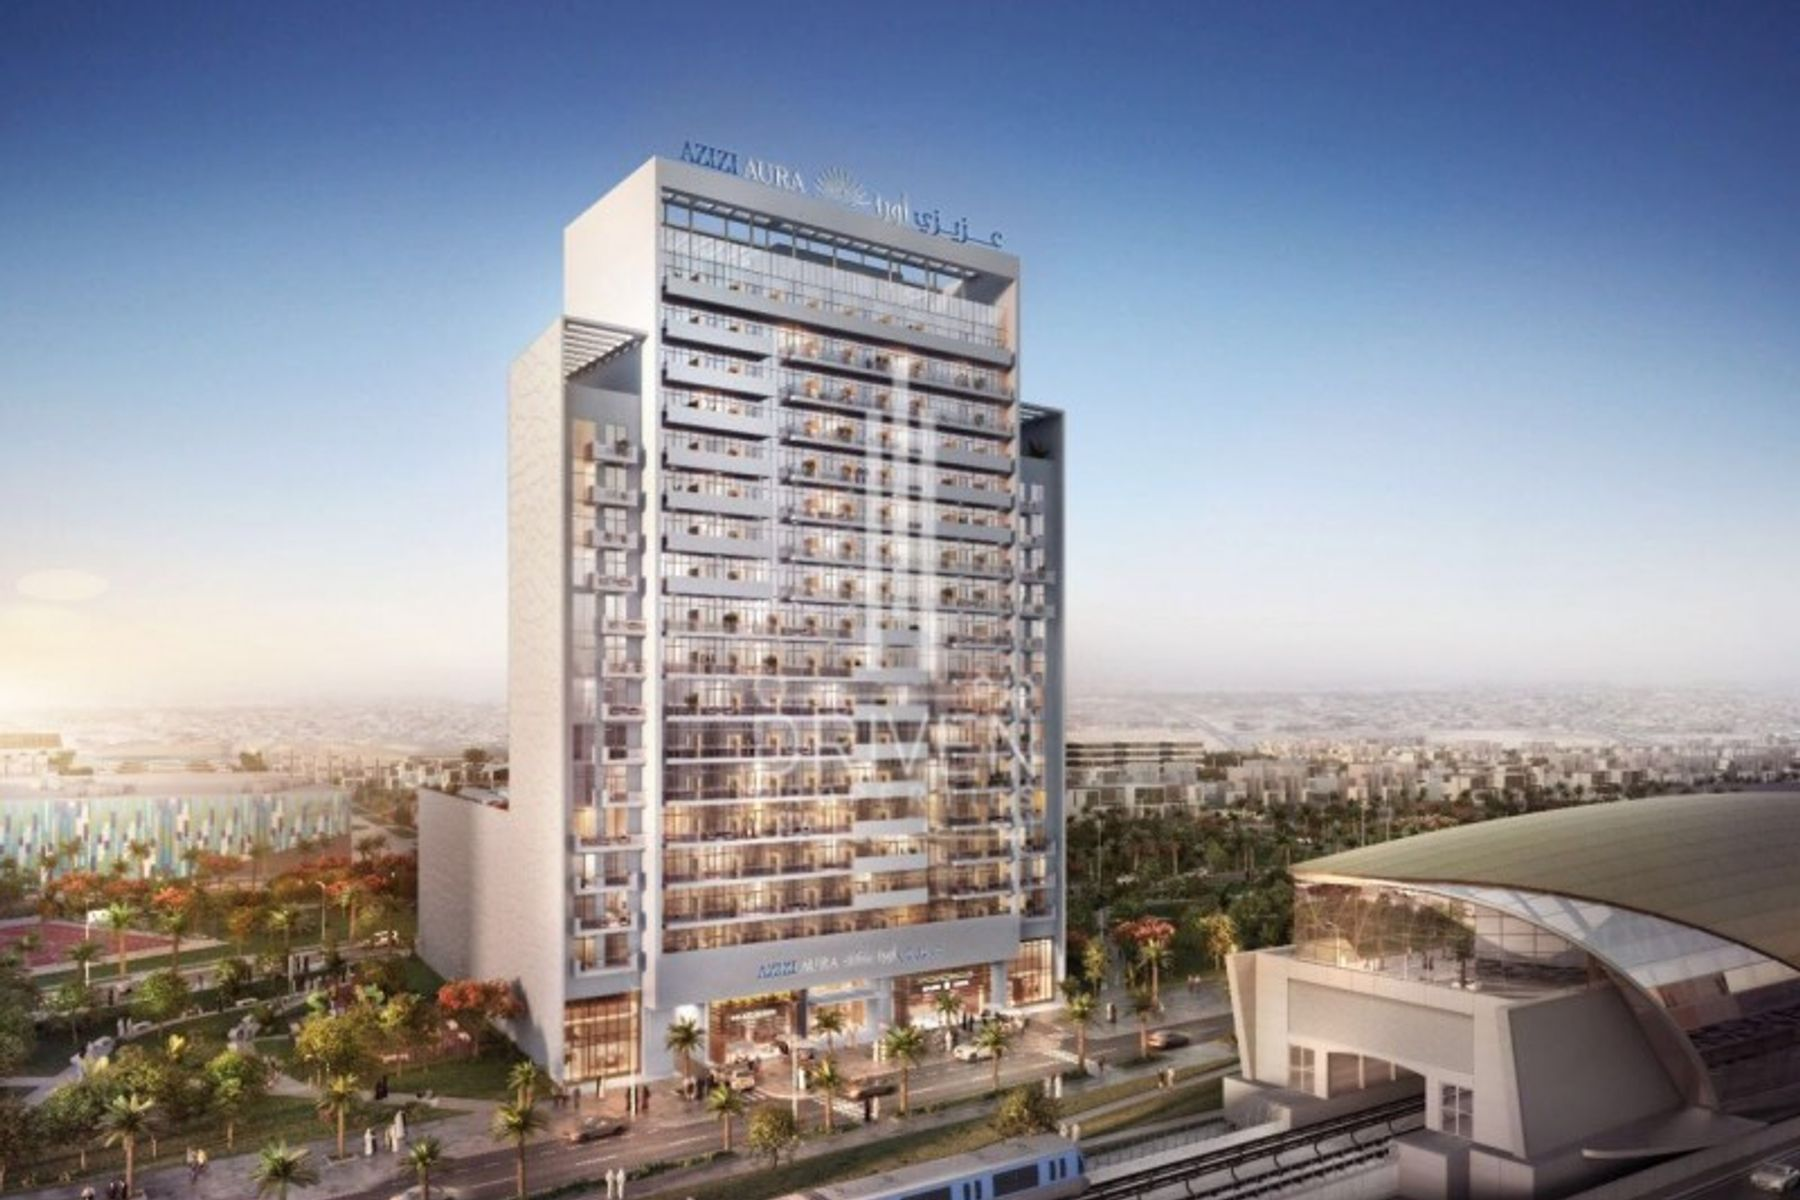 Apartment for Sale in Azizi Aura - Downtown Jebel Ali